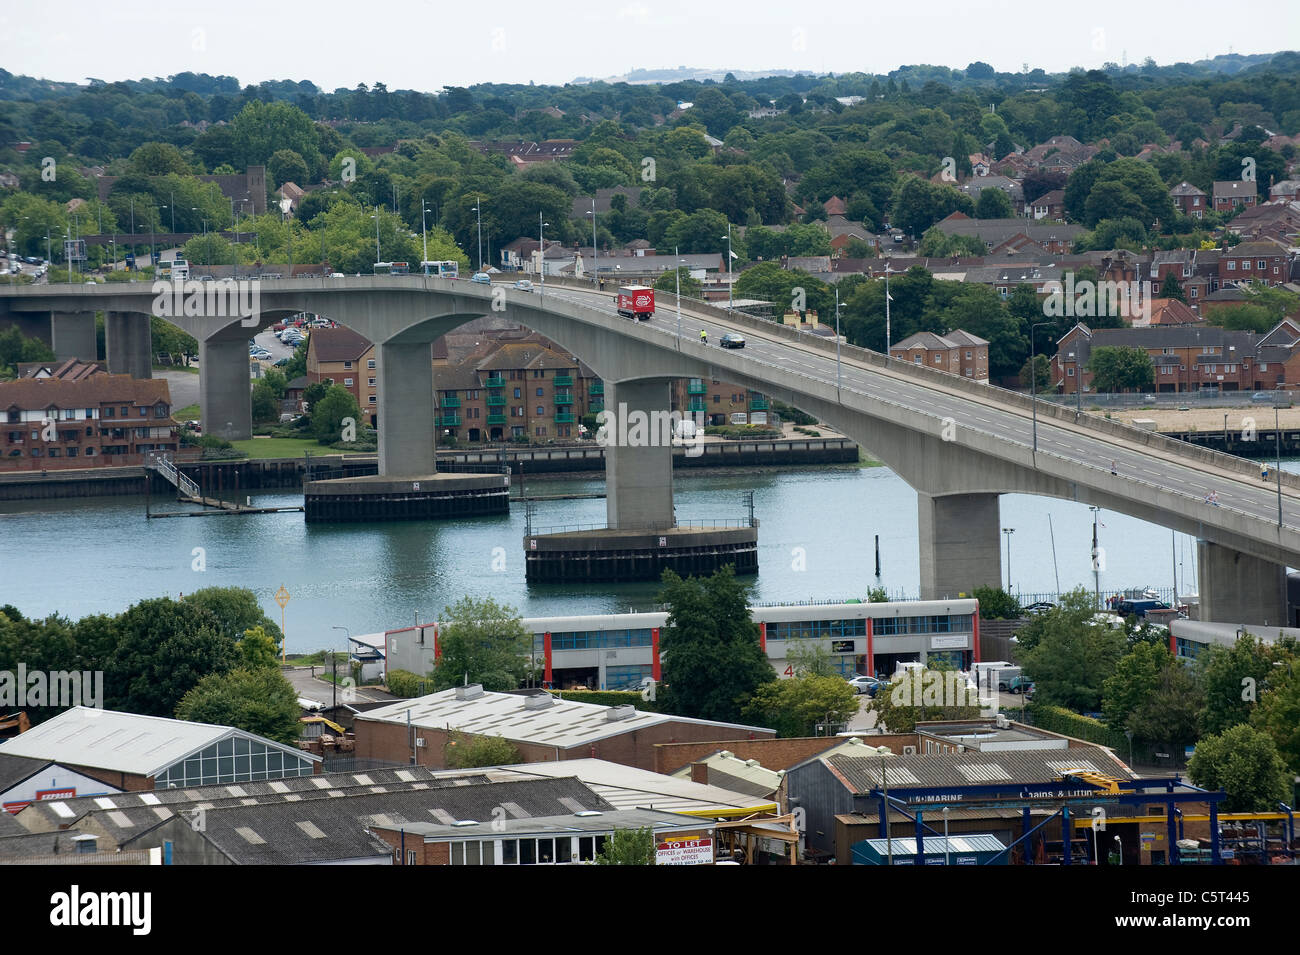 Aerial view of the Itchen Toll Bridge, Southampton, England - Stock Image